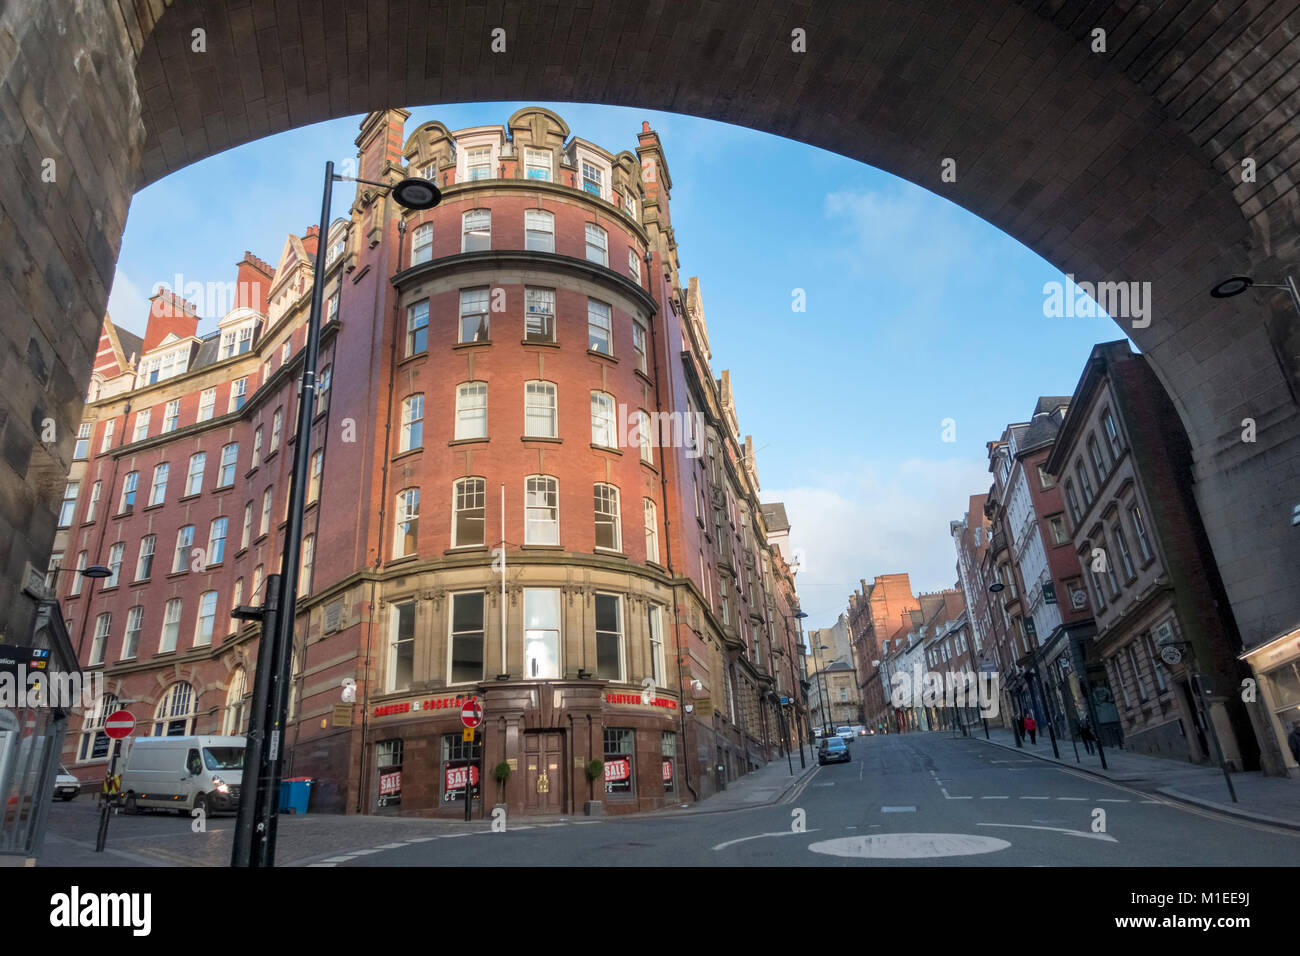 Looking up Dean street, Newcastle upon Tyne, under a high railway arch. - Stock Image